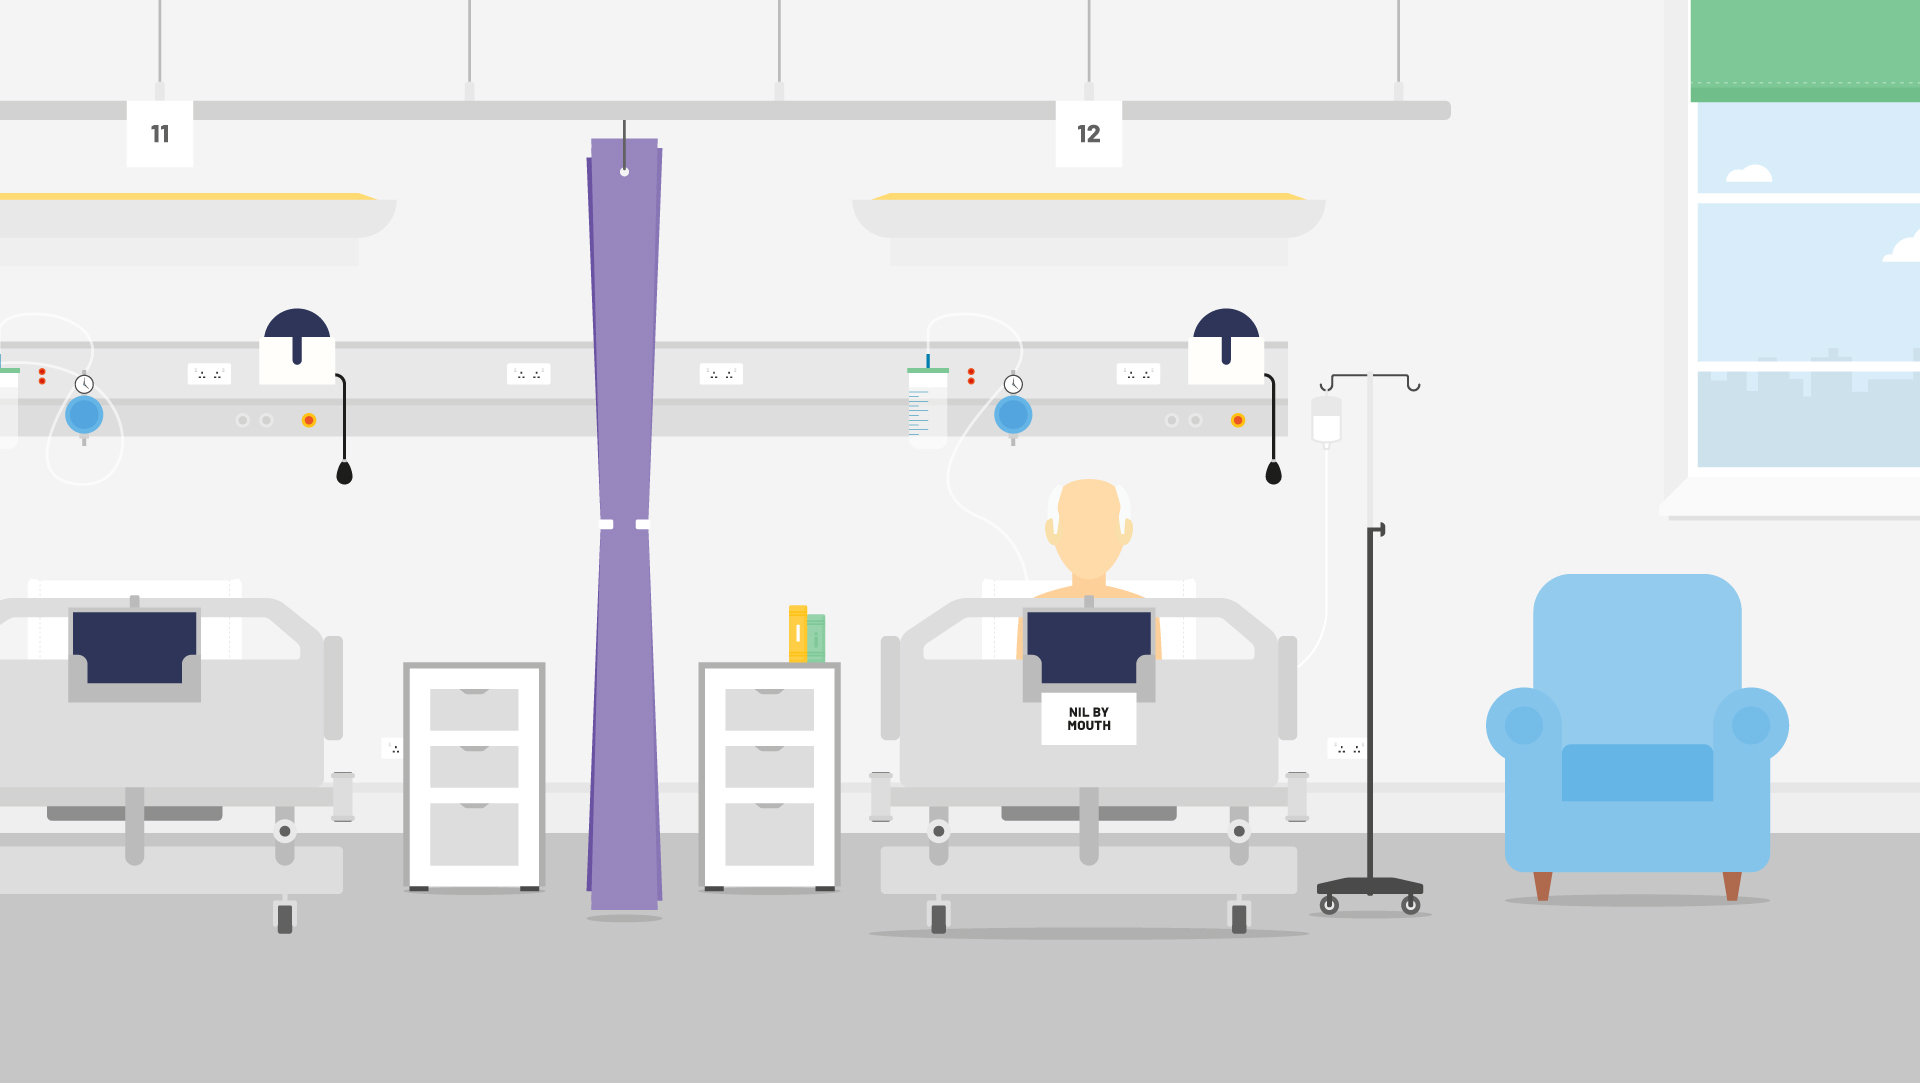 Large hospital ward illustration image of a man in his hospital bed.